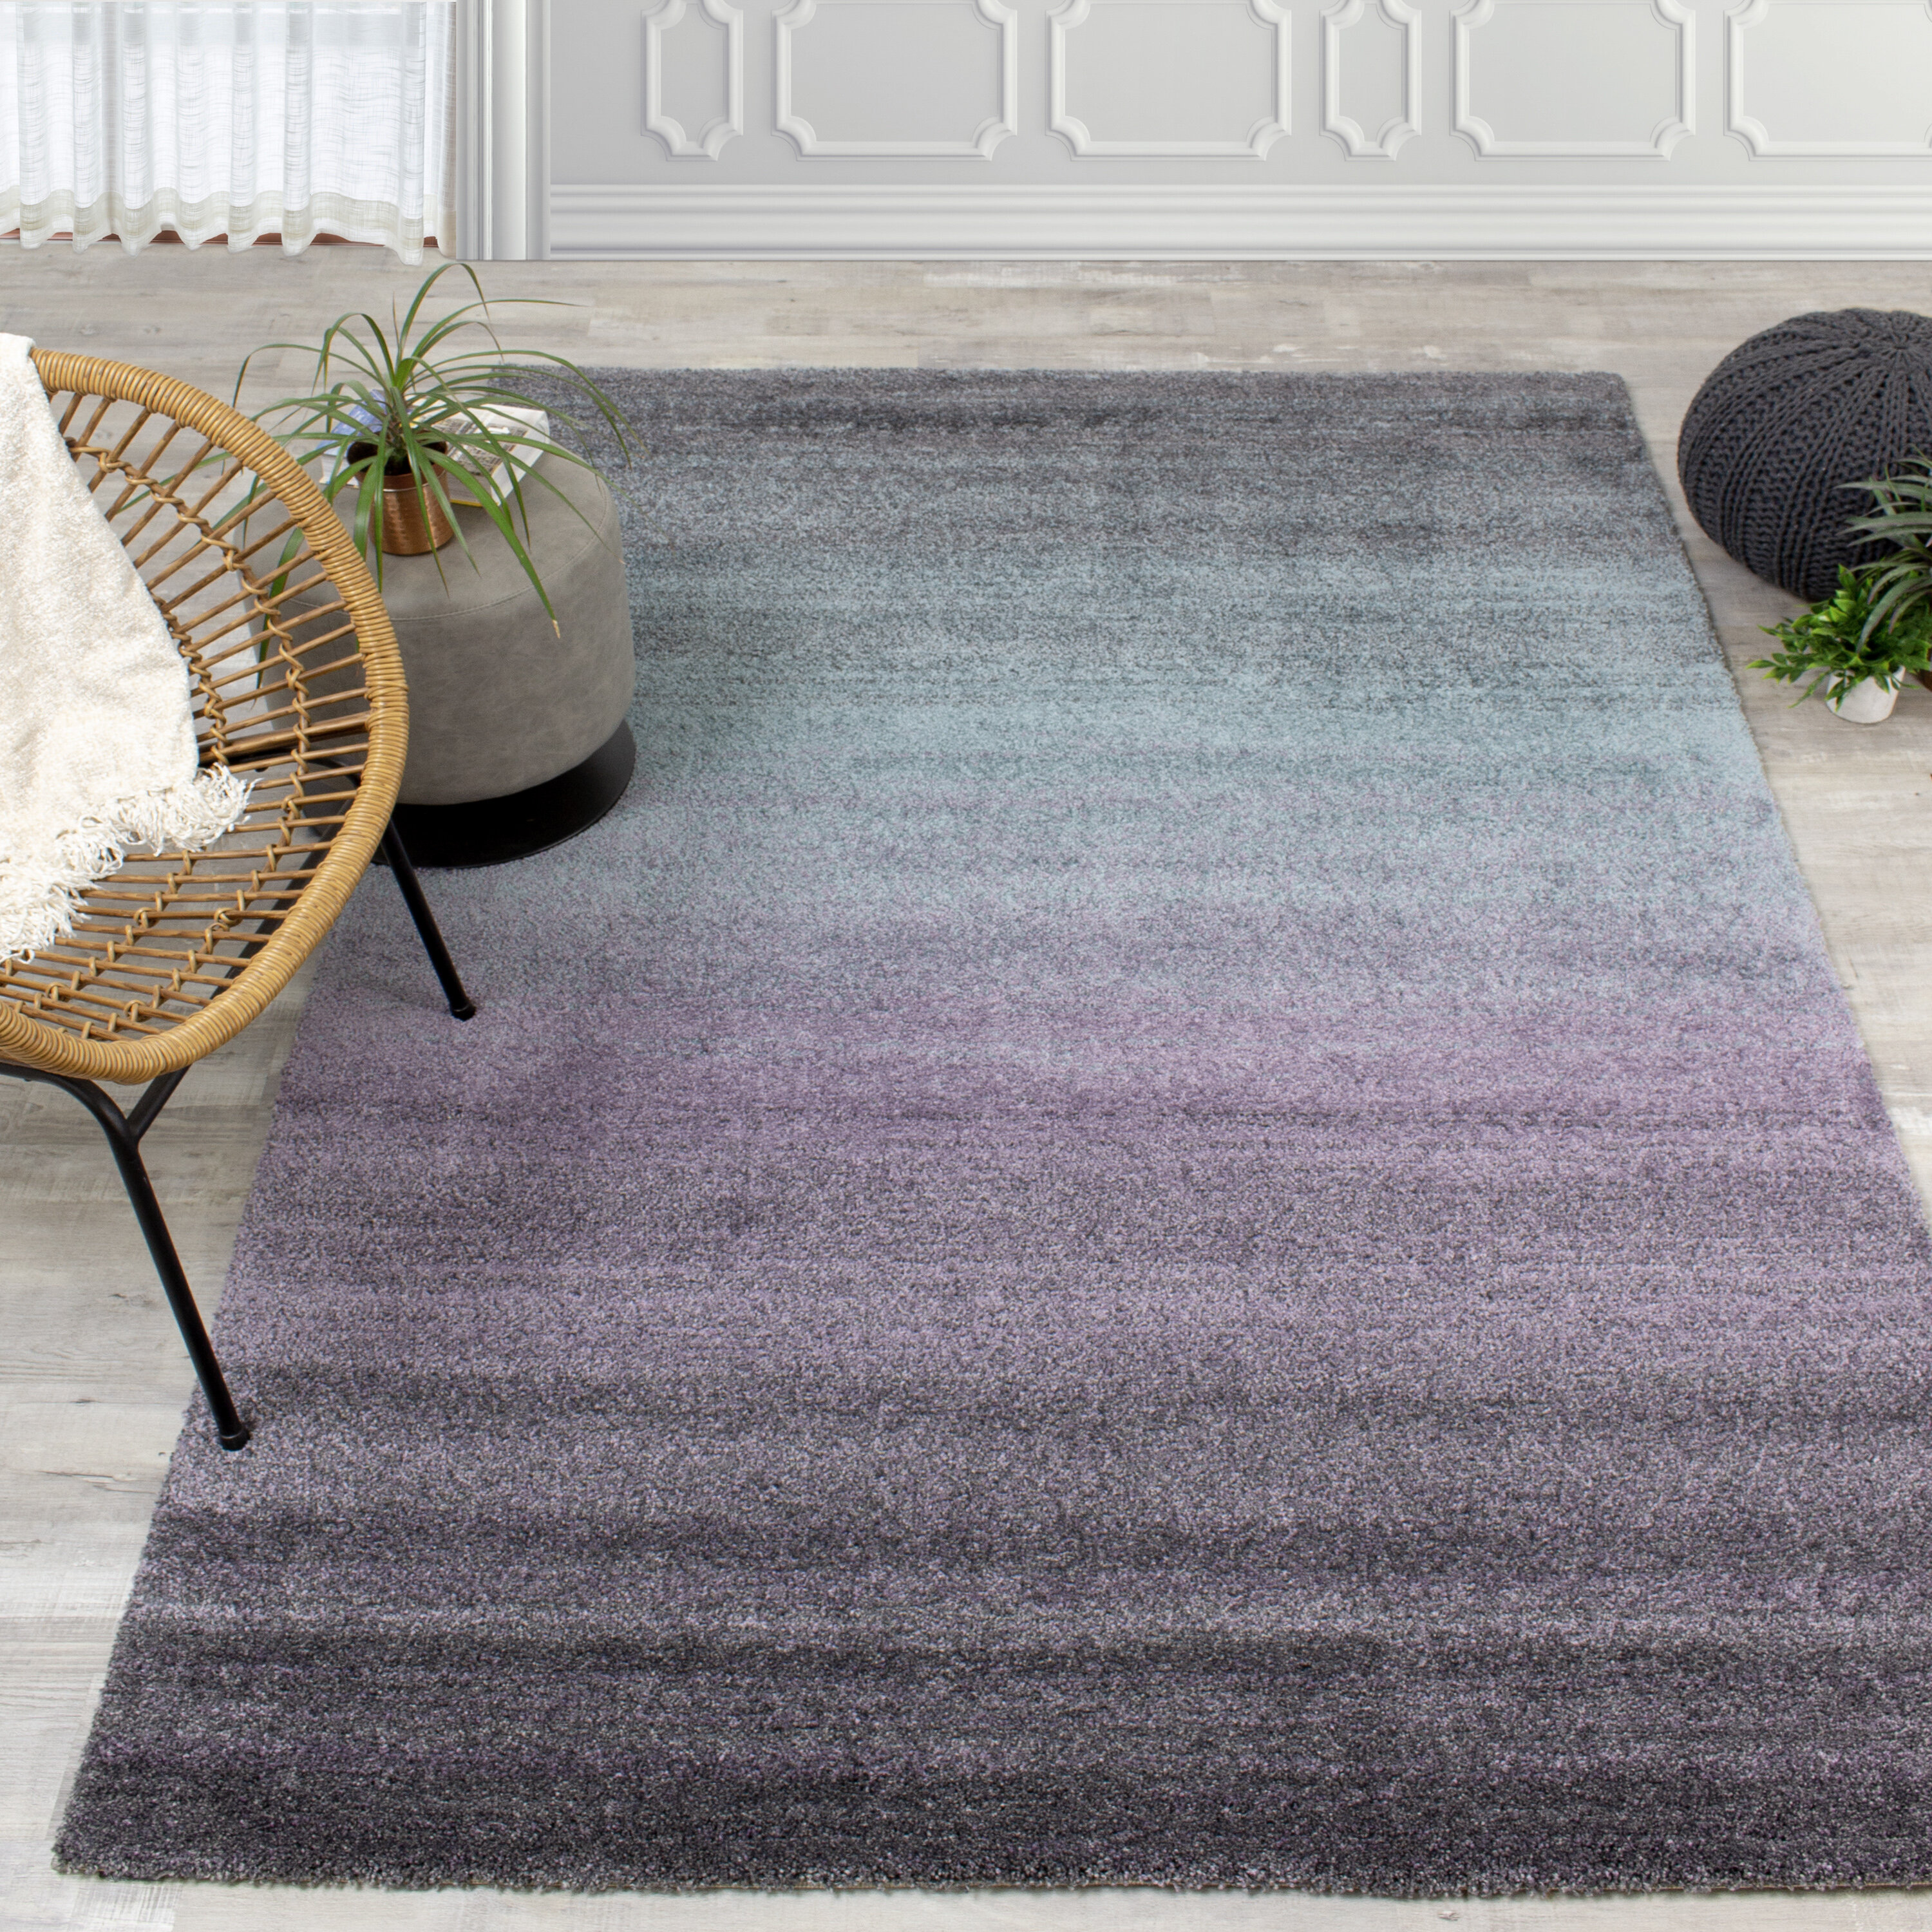 Aubuchon Gray Purple Area Rug